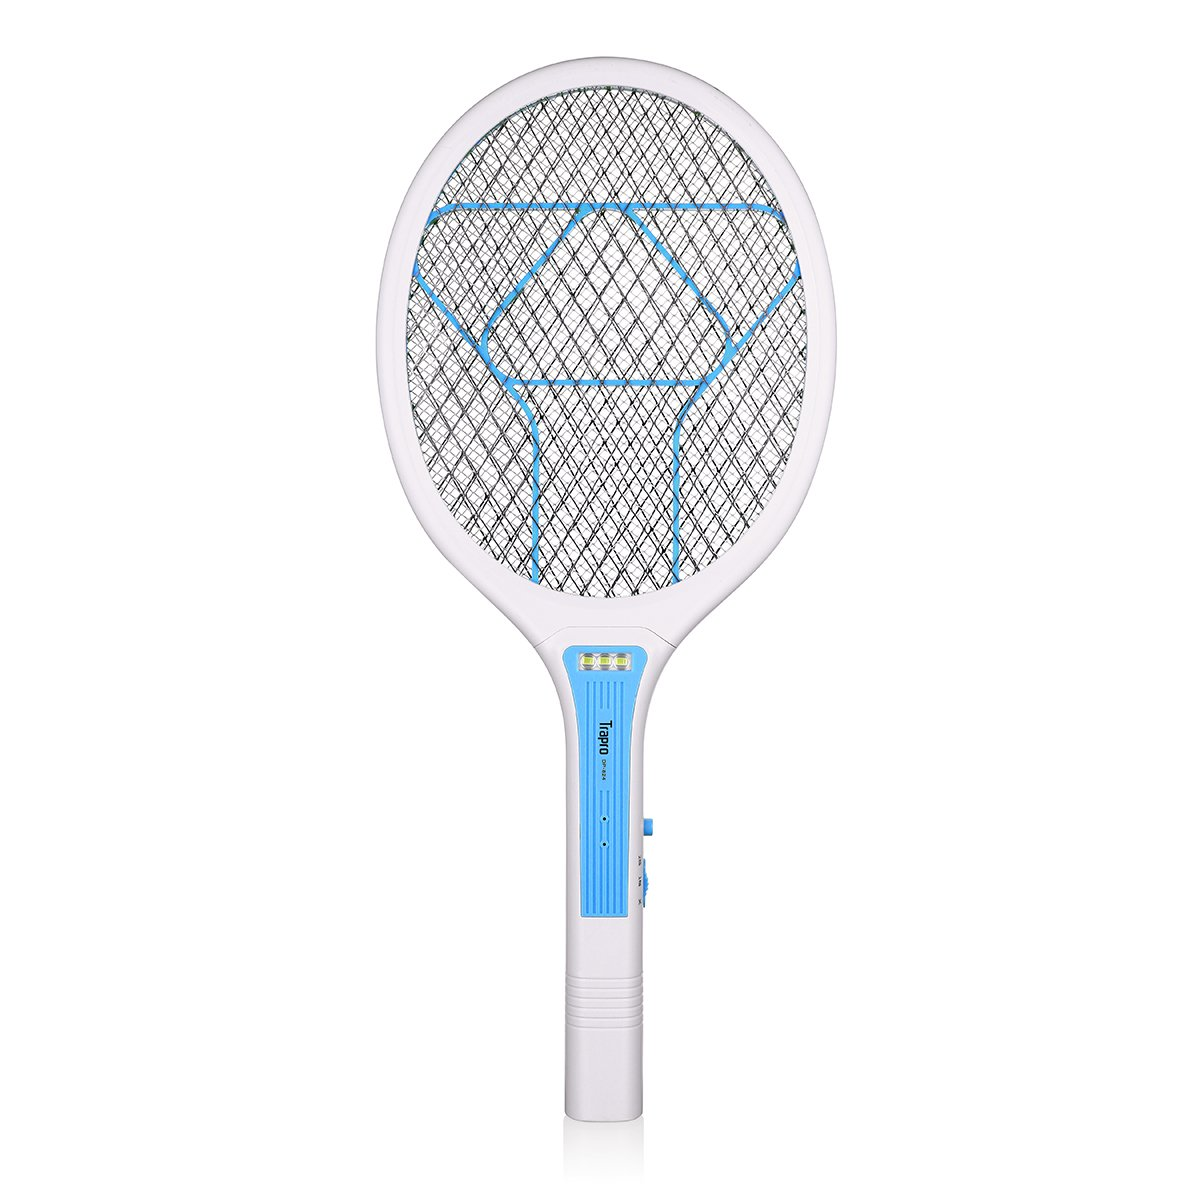 Trapro Bug Zapper Racket Electric Fly Swatter Mosquito Killer, USB Charging / 3000 Volt / Ultra-Bright LED / Unique 3-Layer Safety Mesh